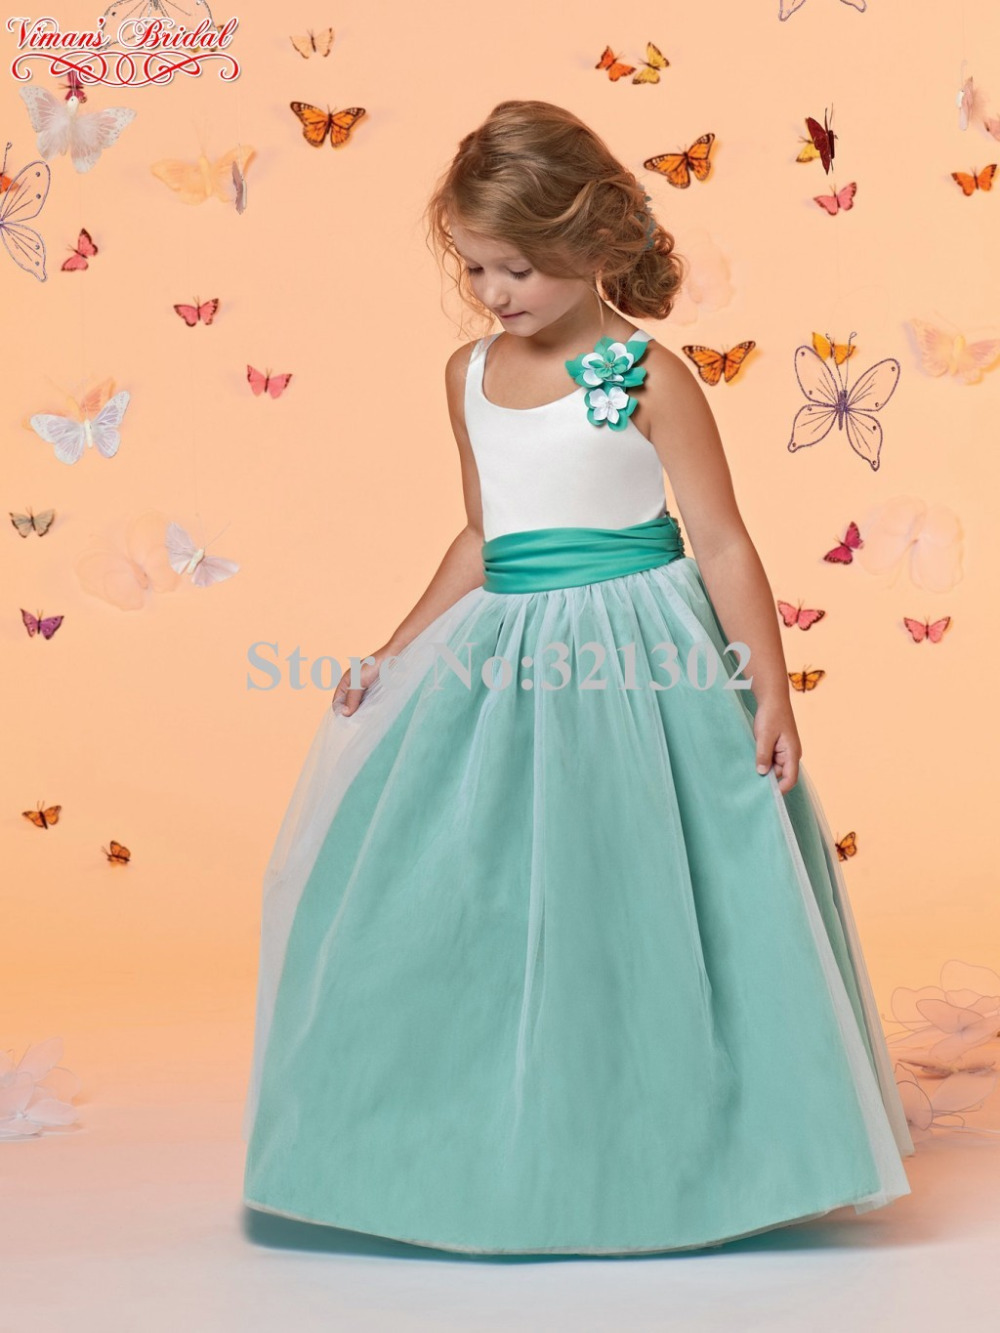 Awesome Bridesmaid Dress For Kids Crest - All Wedding Dresses ...